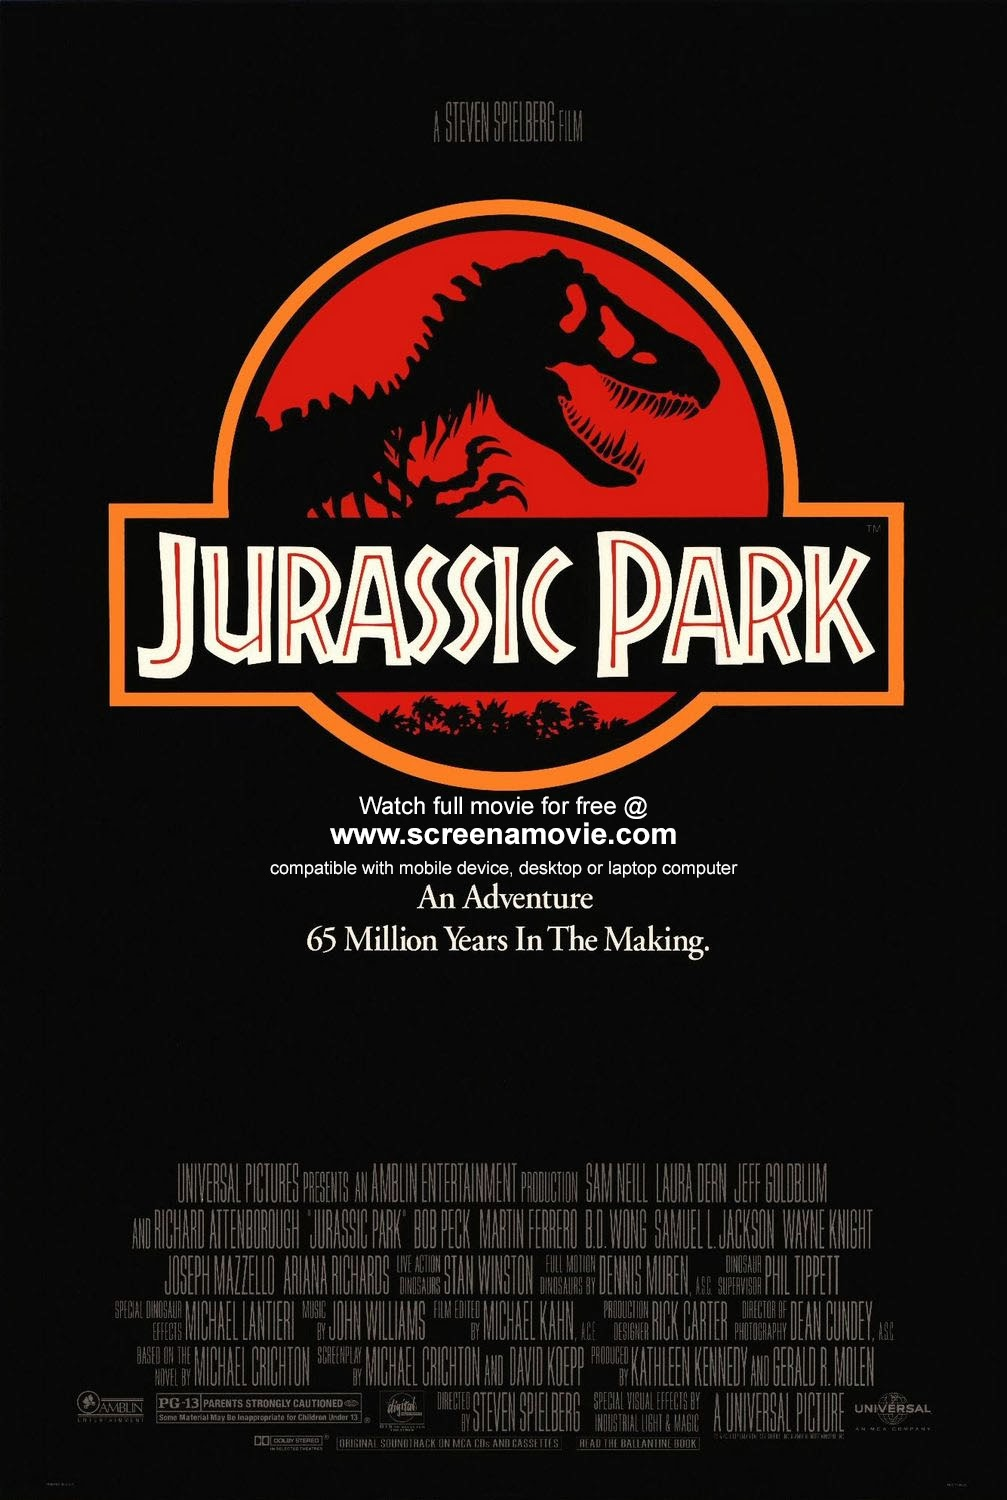 Jurassic Park_@screenamovie